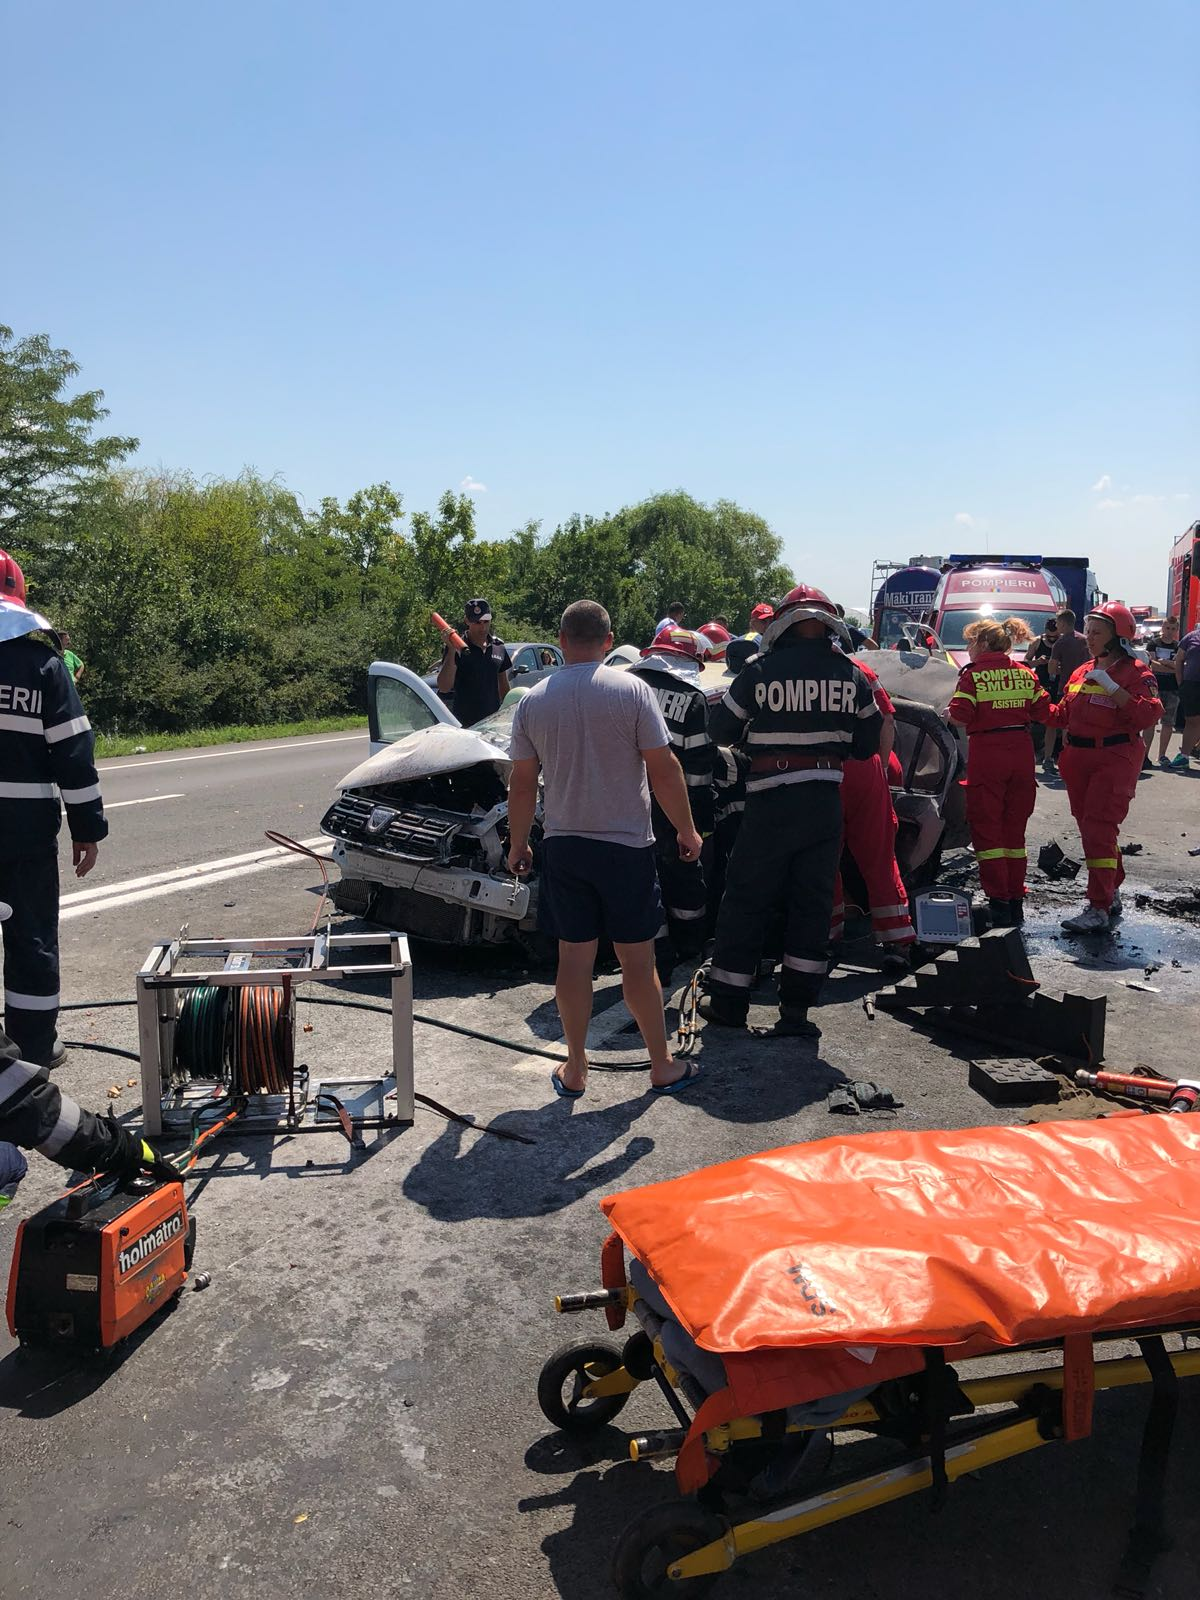 Motociclist, de 26 ani, ucis in accident